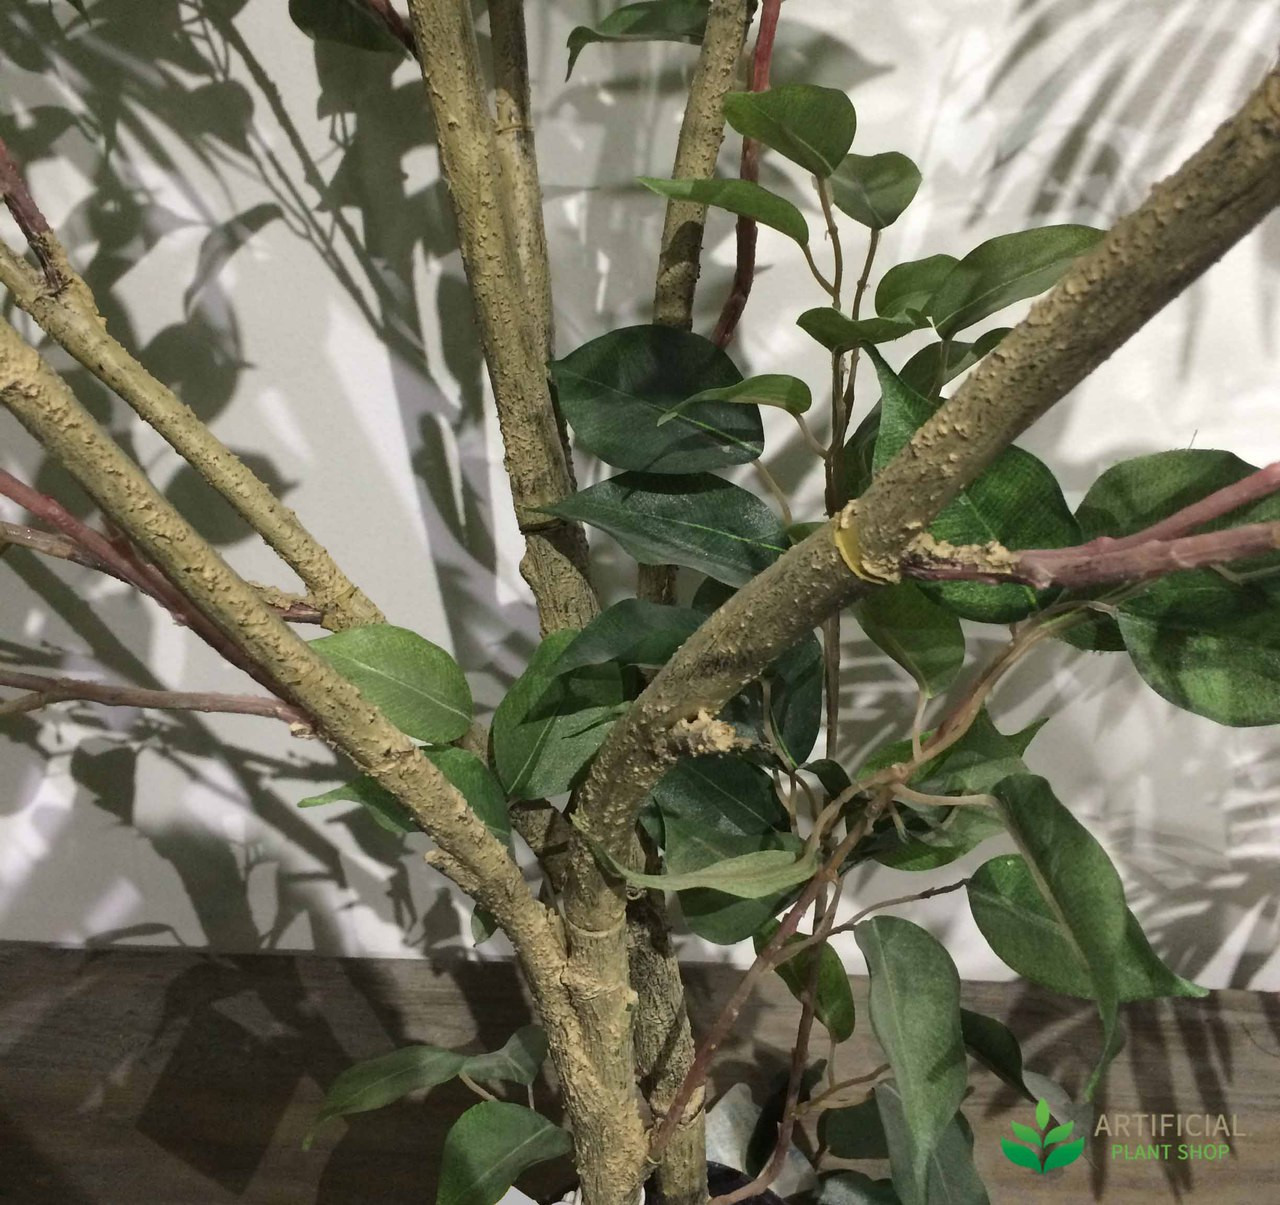 Ficus tree branches